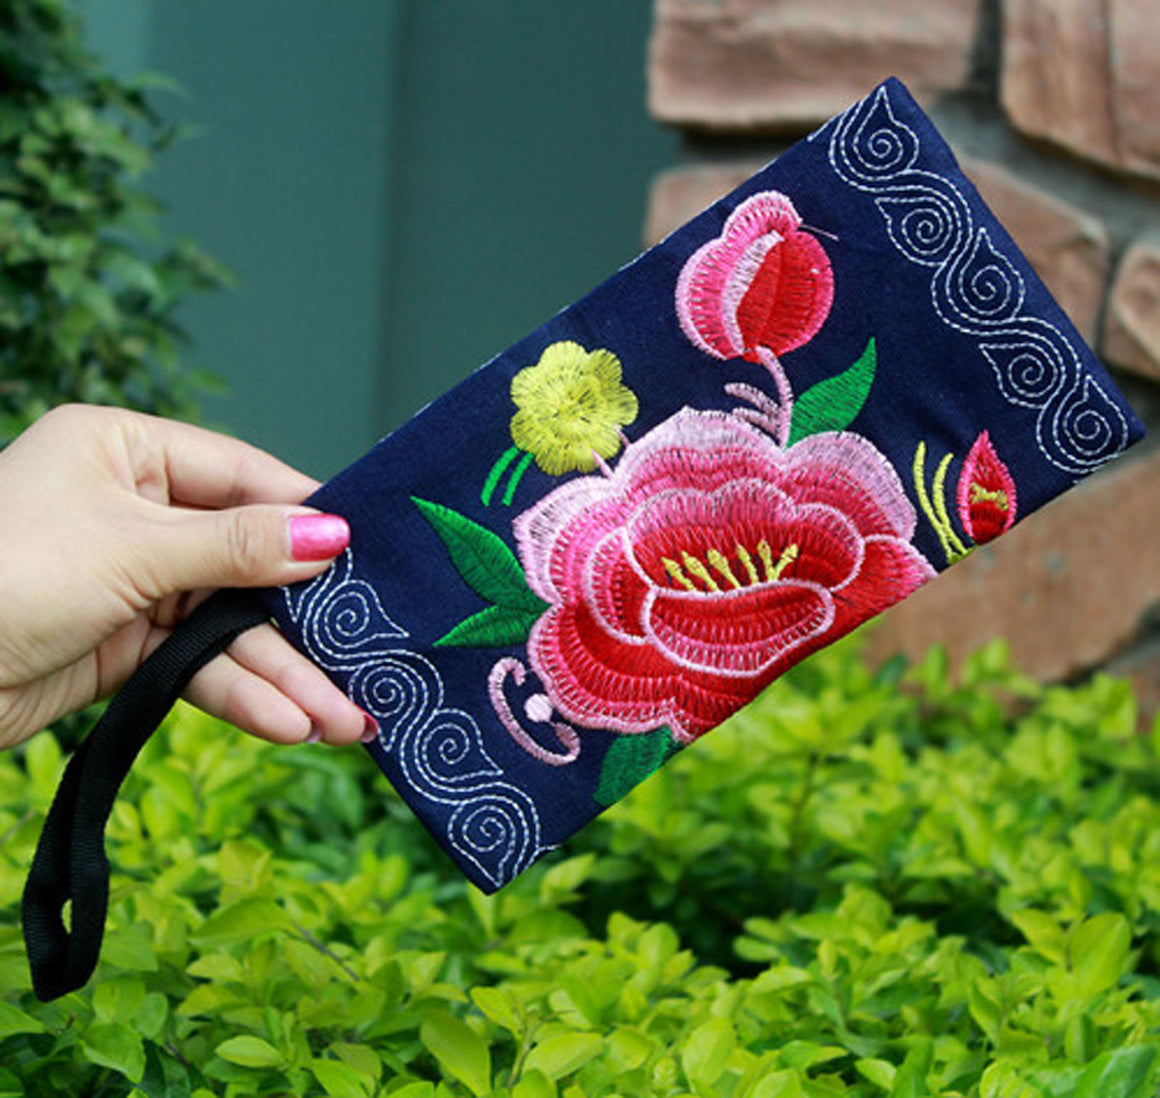 Fashion Colorful embroidery Small handbags!Hot Lady Makeup bag Top Floral embroidery Shopping Cute mobile phone key Carrier